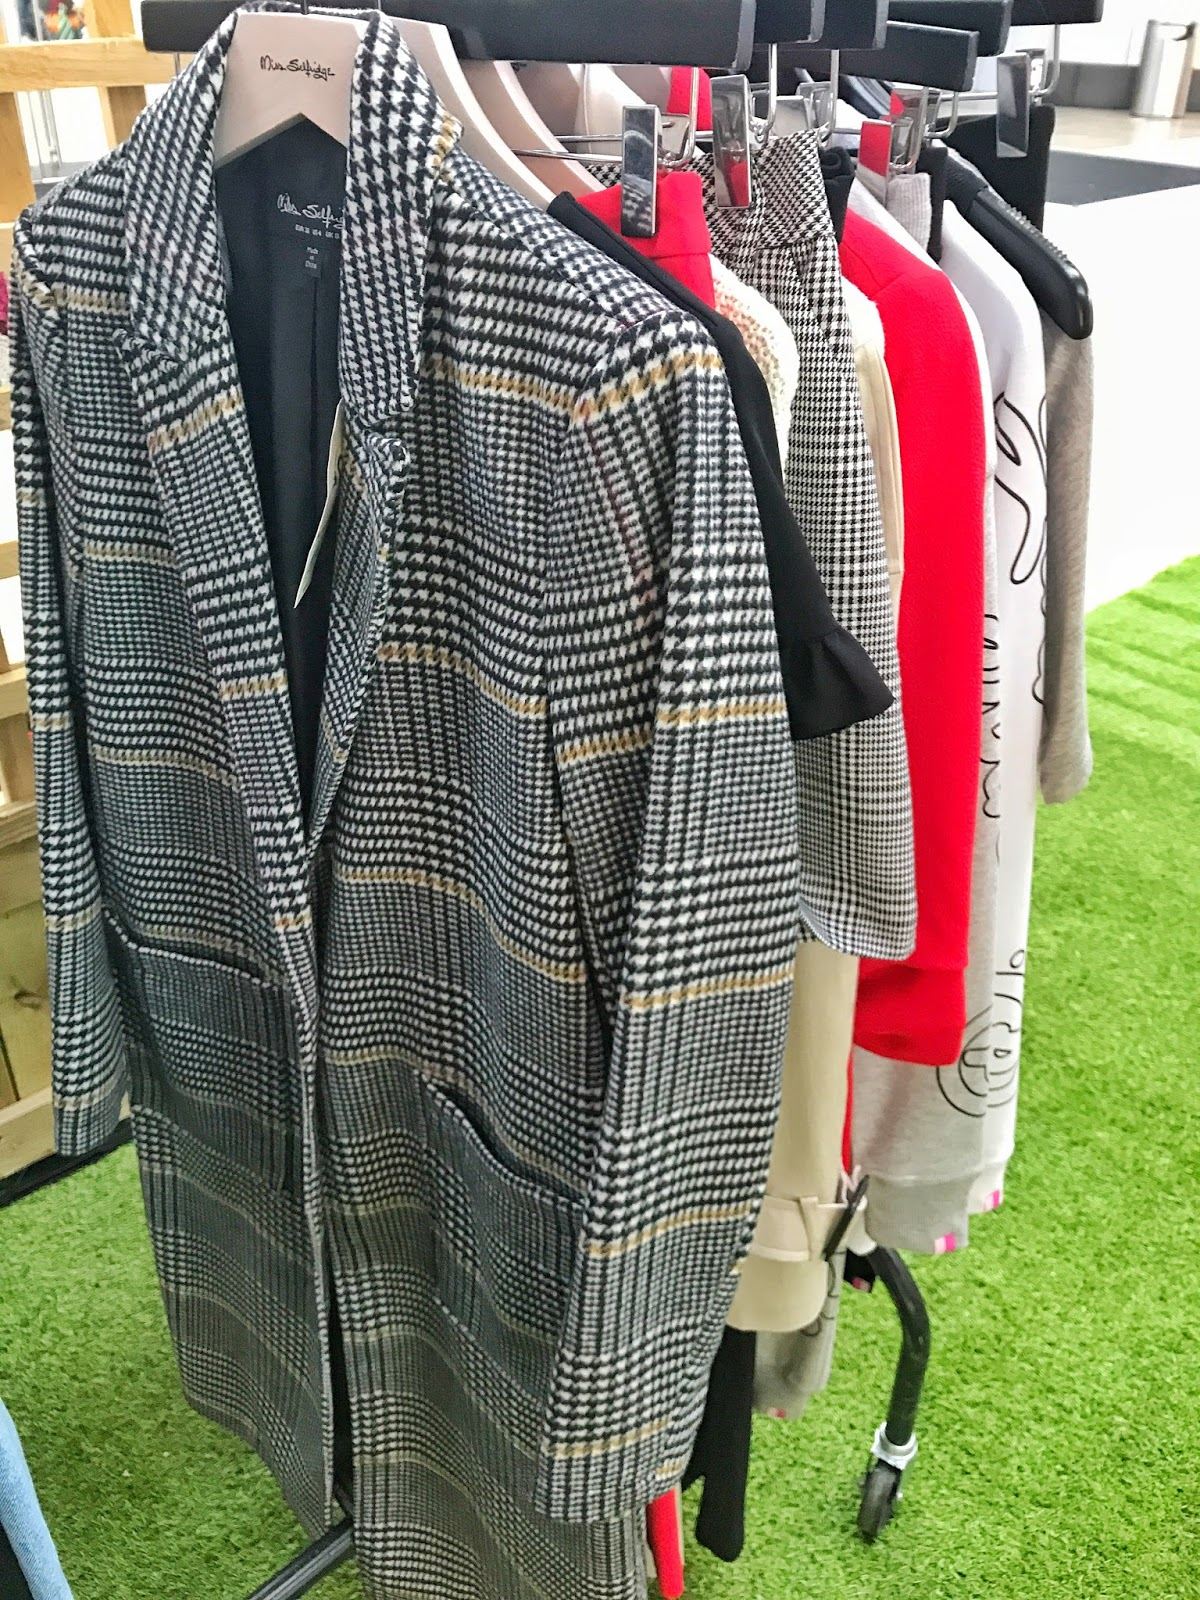 intu, Style Garden, Milton Keynes, Love MK, MK Blogger, Fashion, AW17, red, prince of Wales, trend